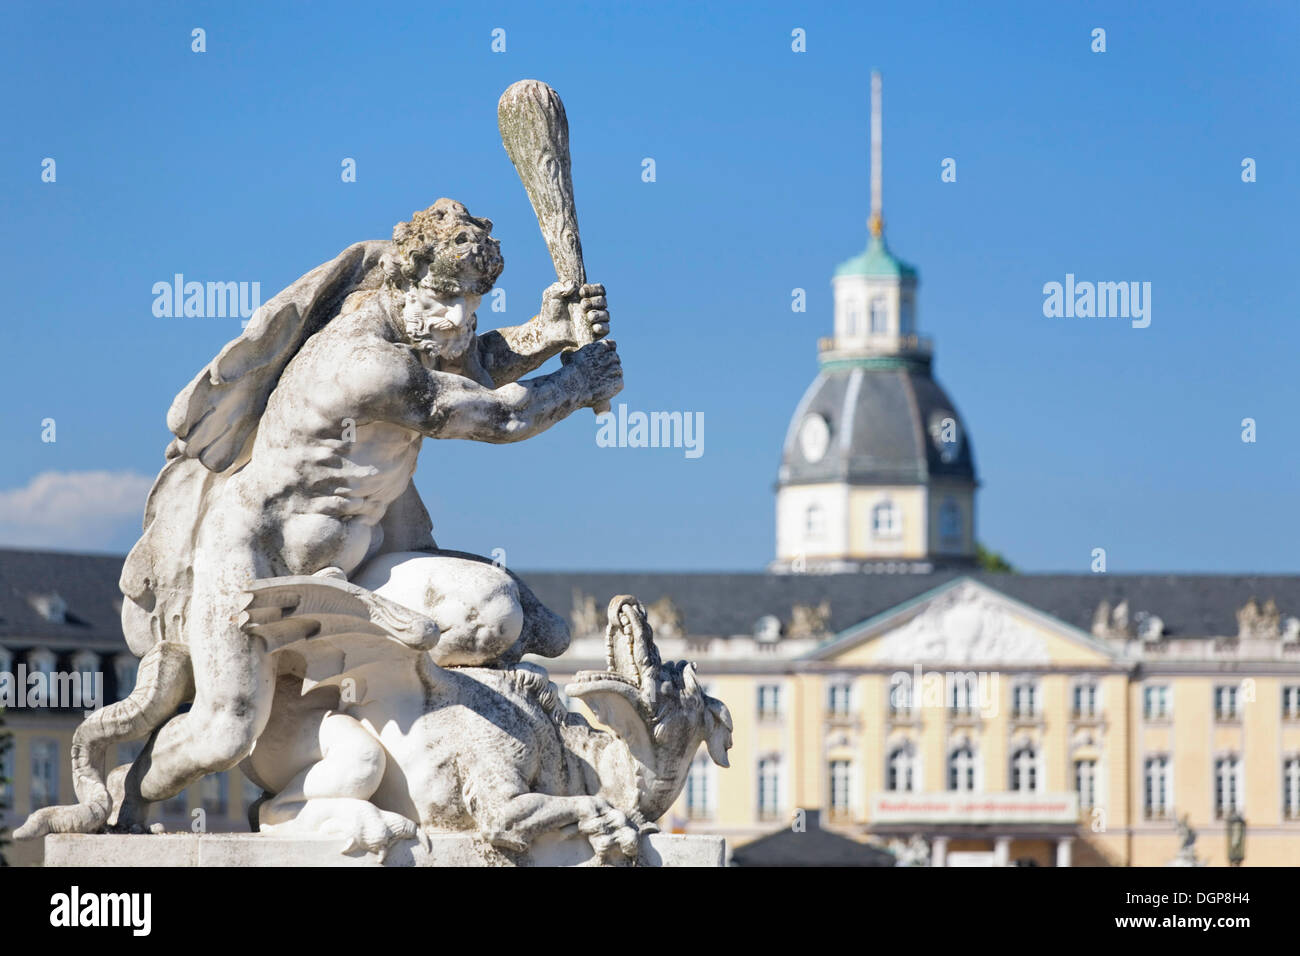 Sculpture in front of Schloss Karlsruhe castle, sculpture focused, Baden-Wuerttemberg - Stock Image